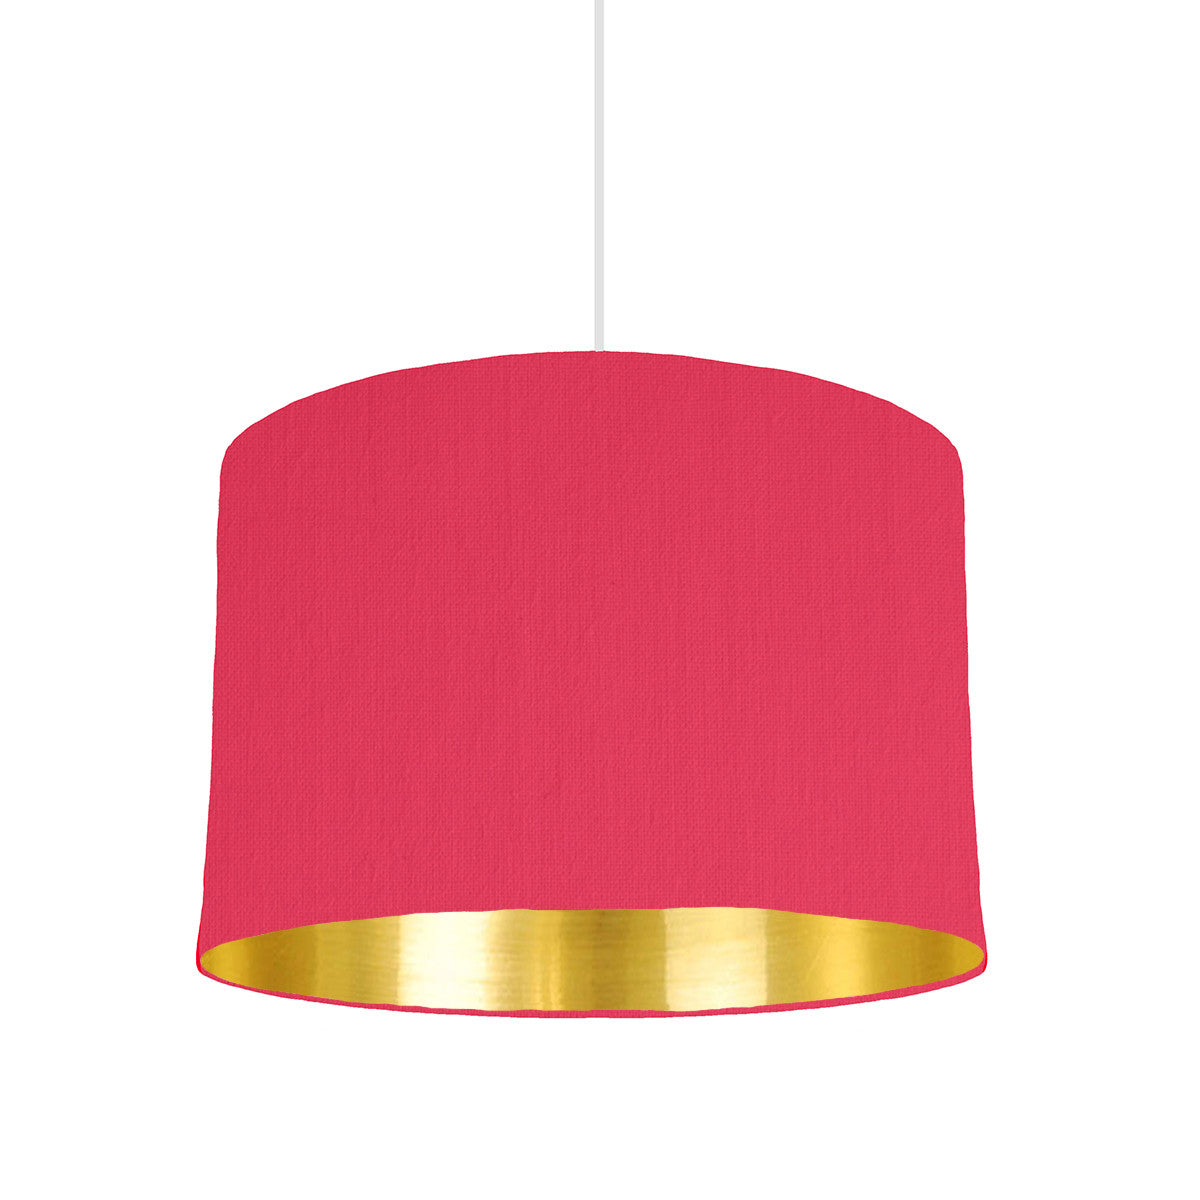 Cerise Pink Lampshade With Gold Mirror Lining, 30cm wide